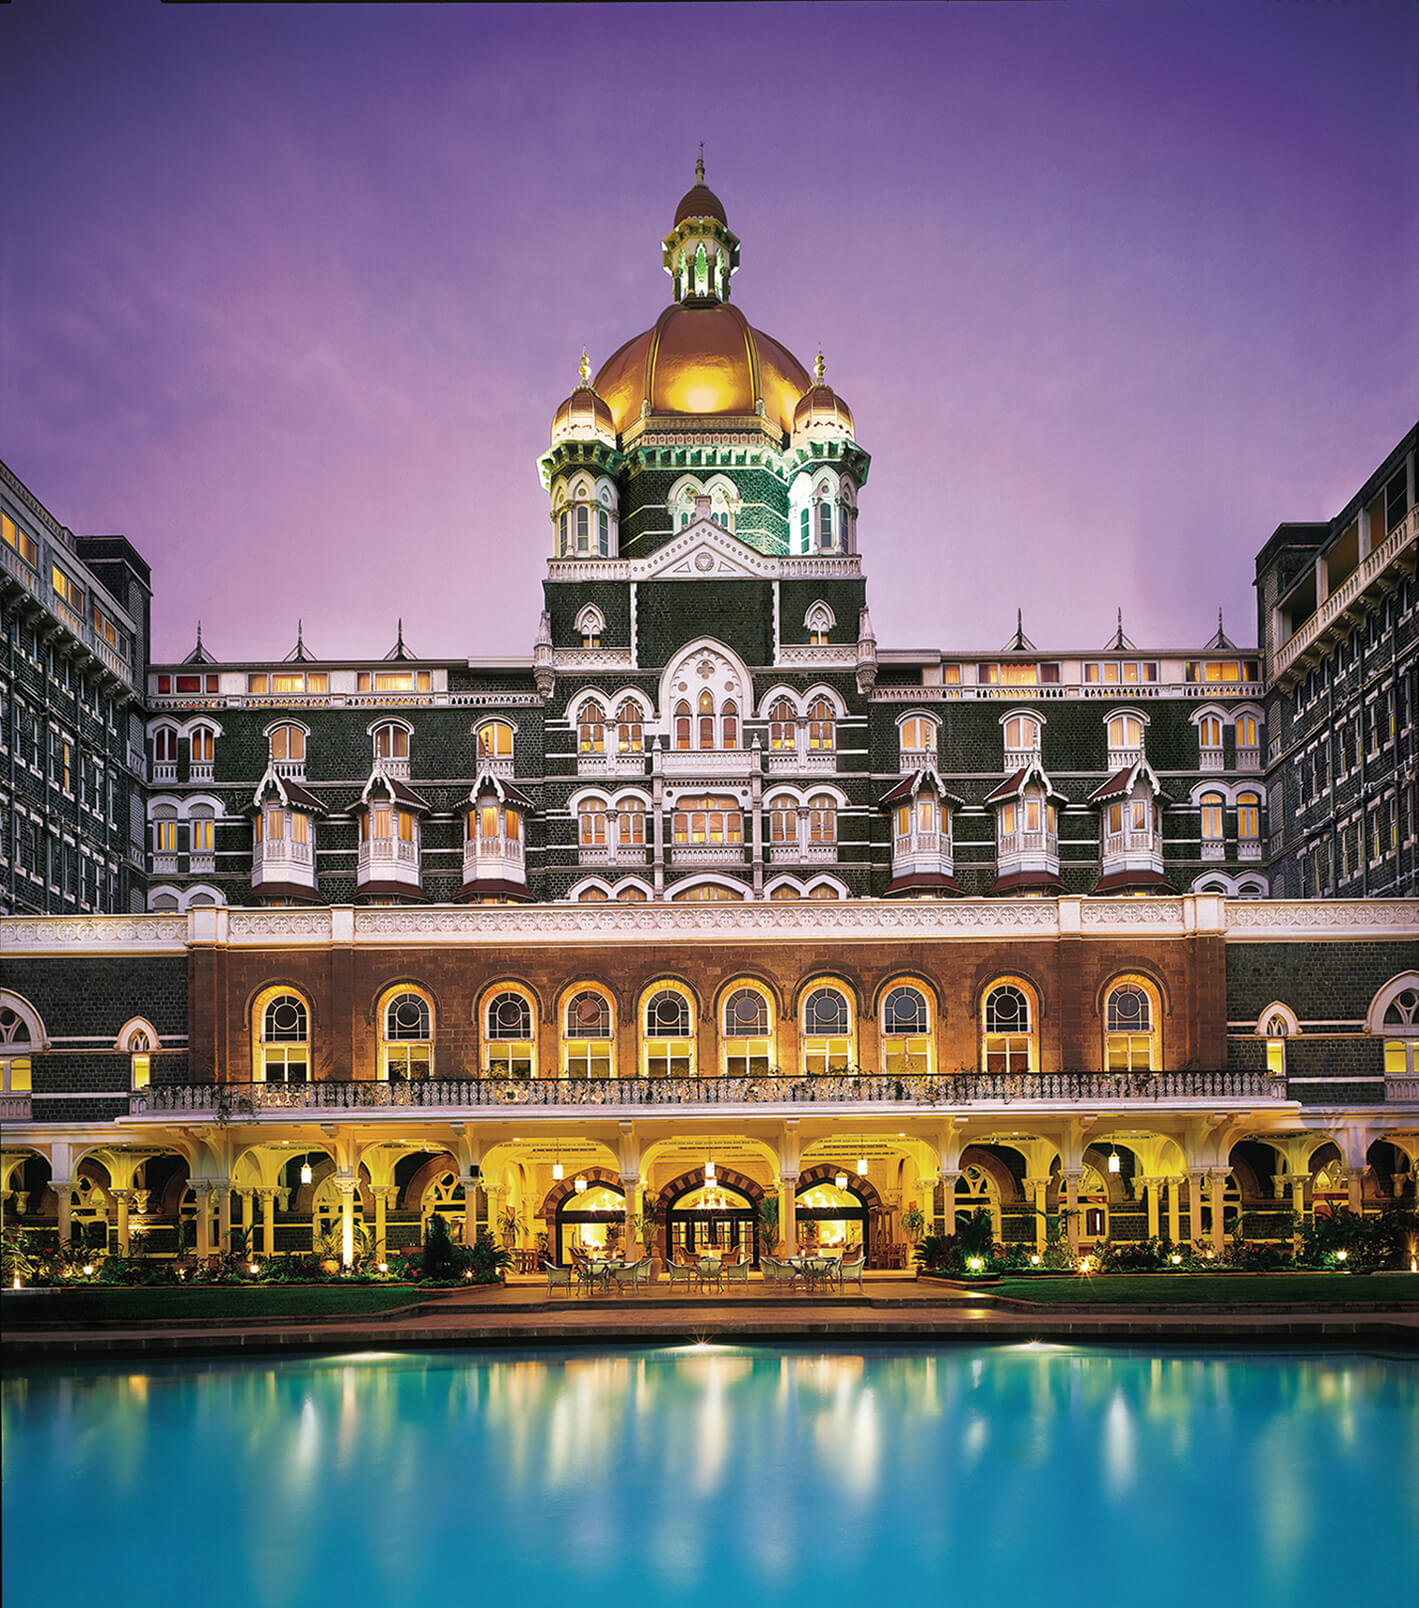 Accommodations in Mumbai - The legendary and iconic Taj Mahal Palace at Apollo Bunder by the Gateway to India in Colaba will be our base. (5 nights)